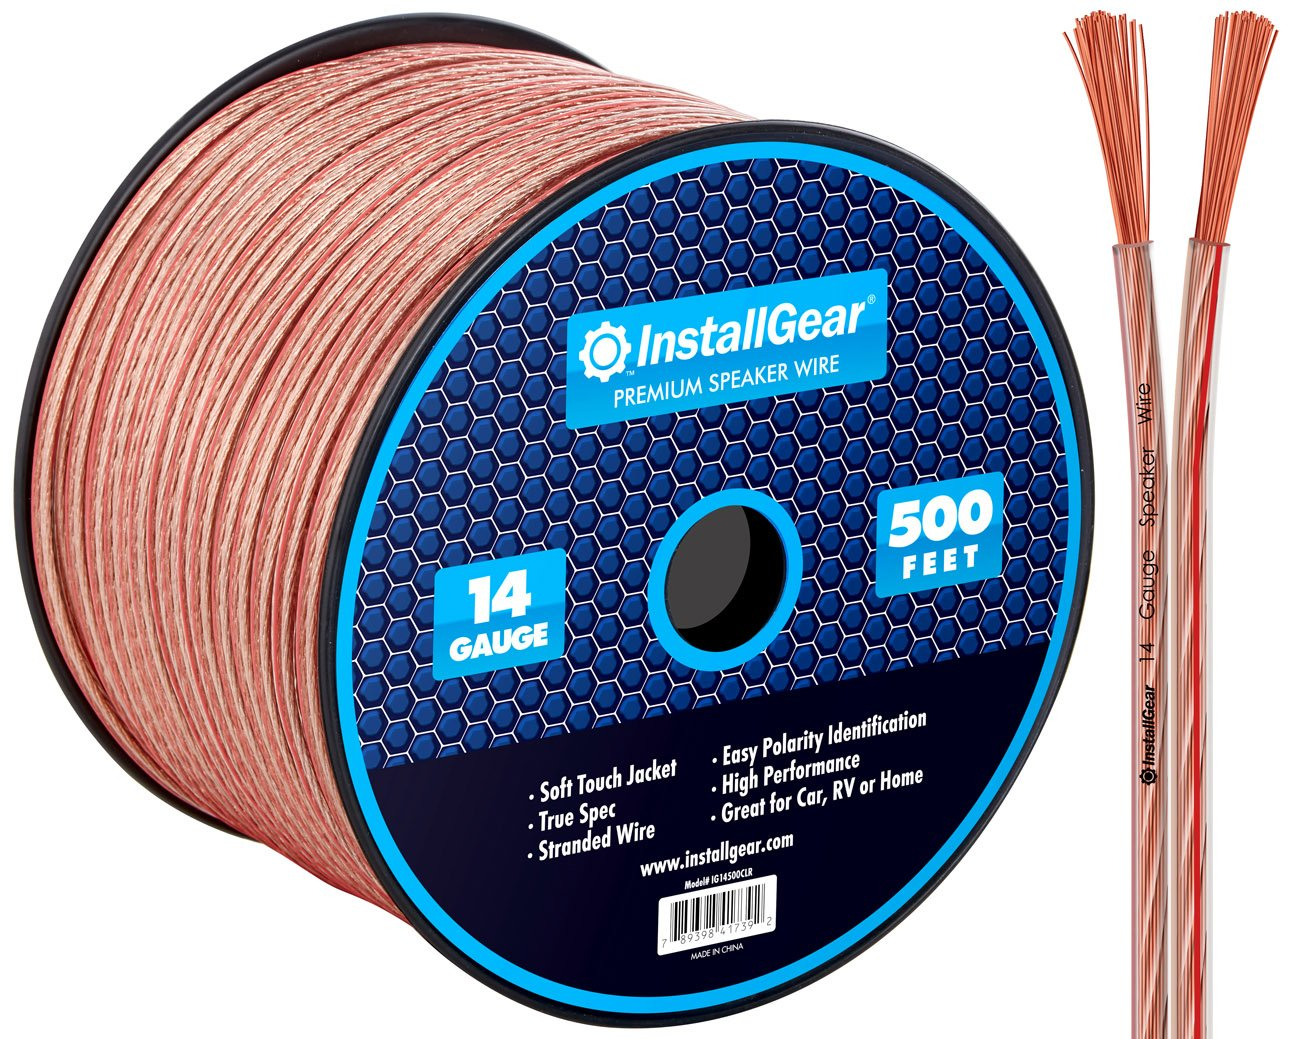 InstallGear 14 Gauge AWG 500ft Speaker Wire Cable - Clear by InstallGear